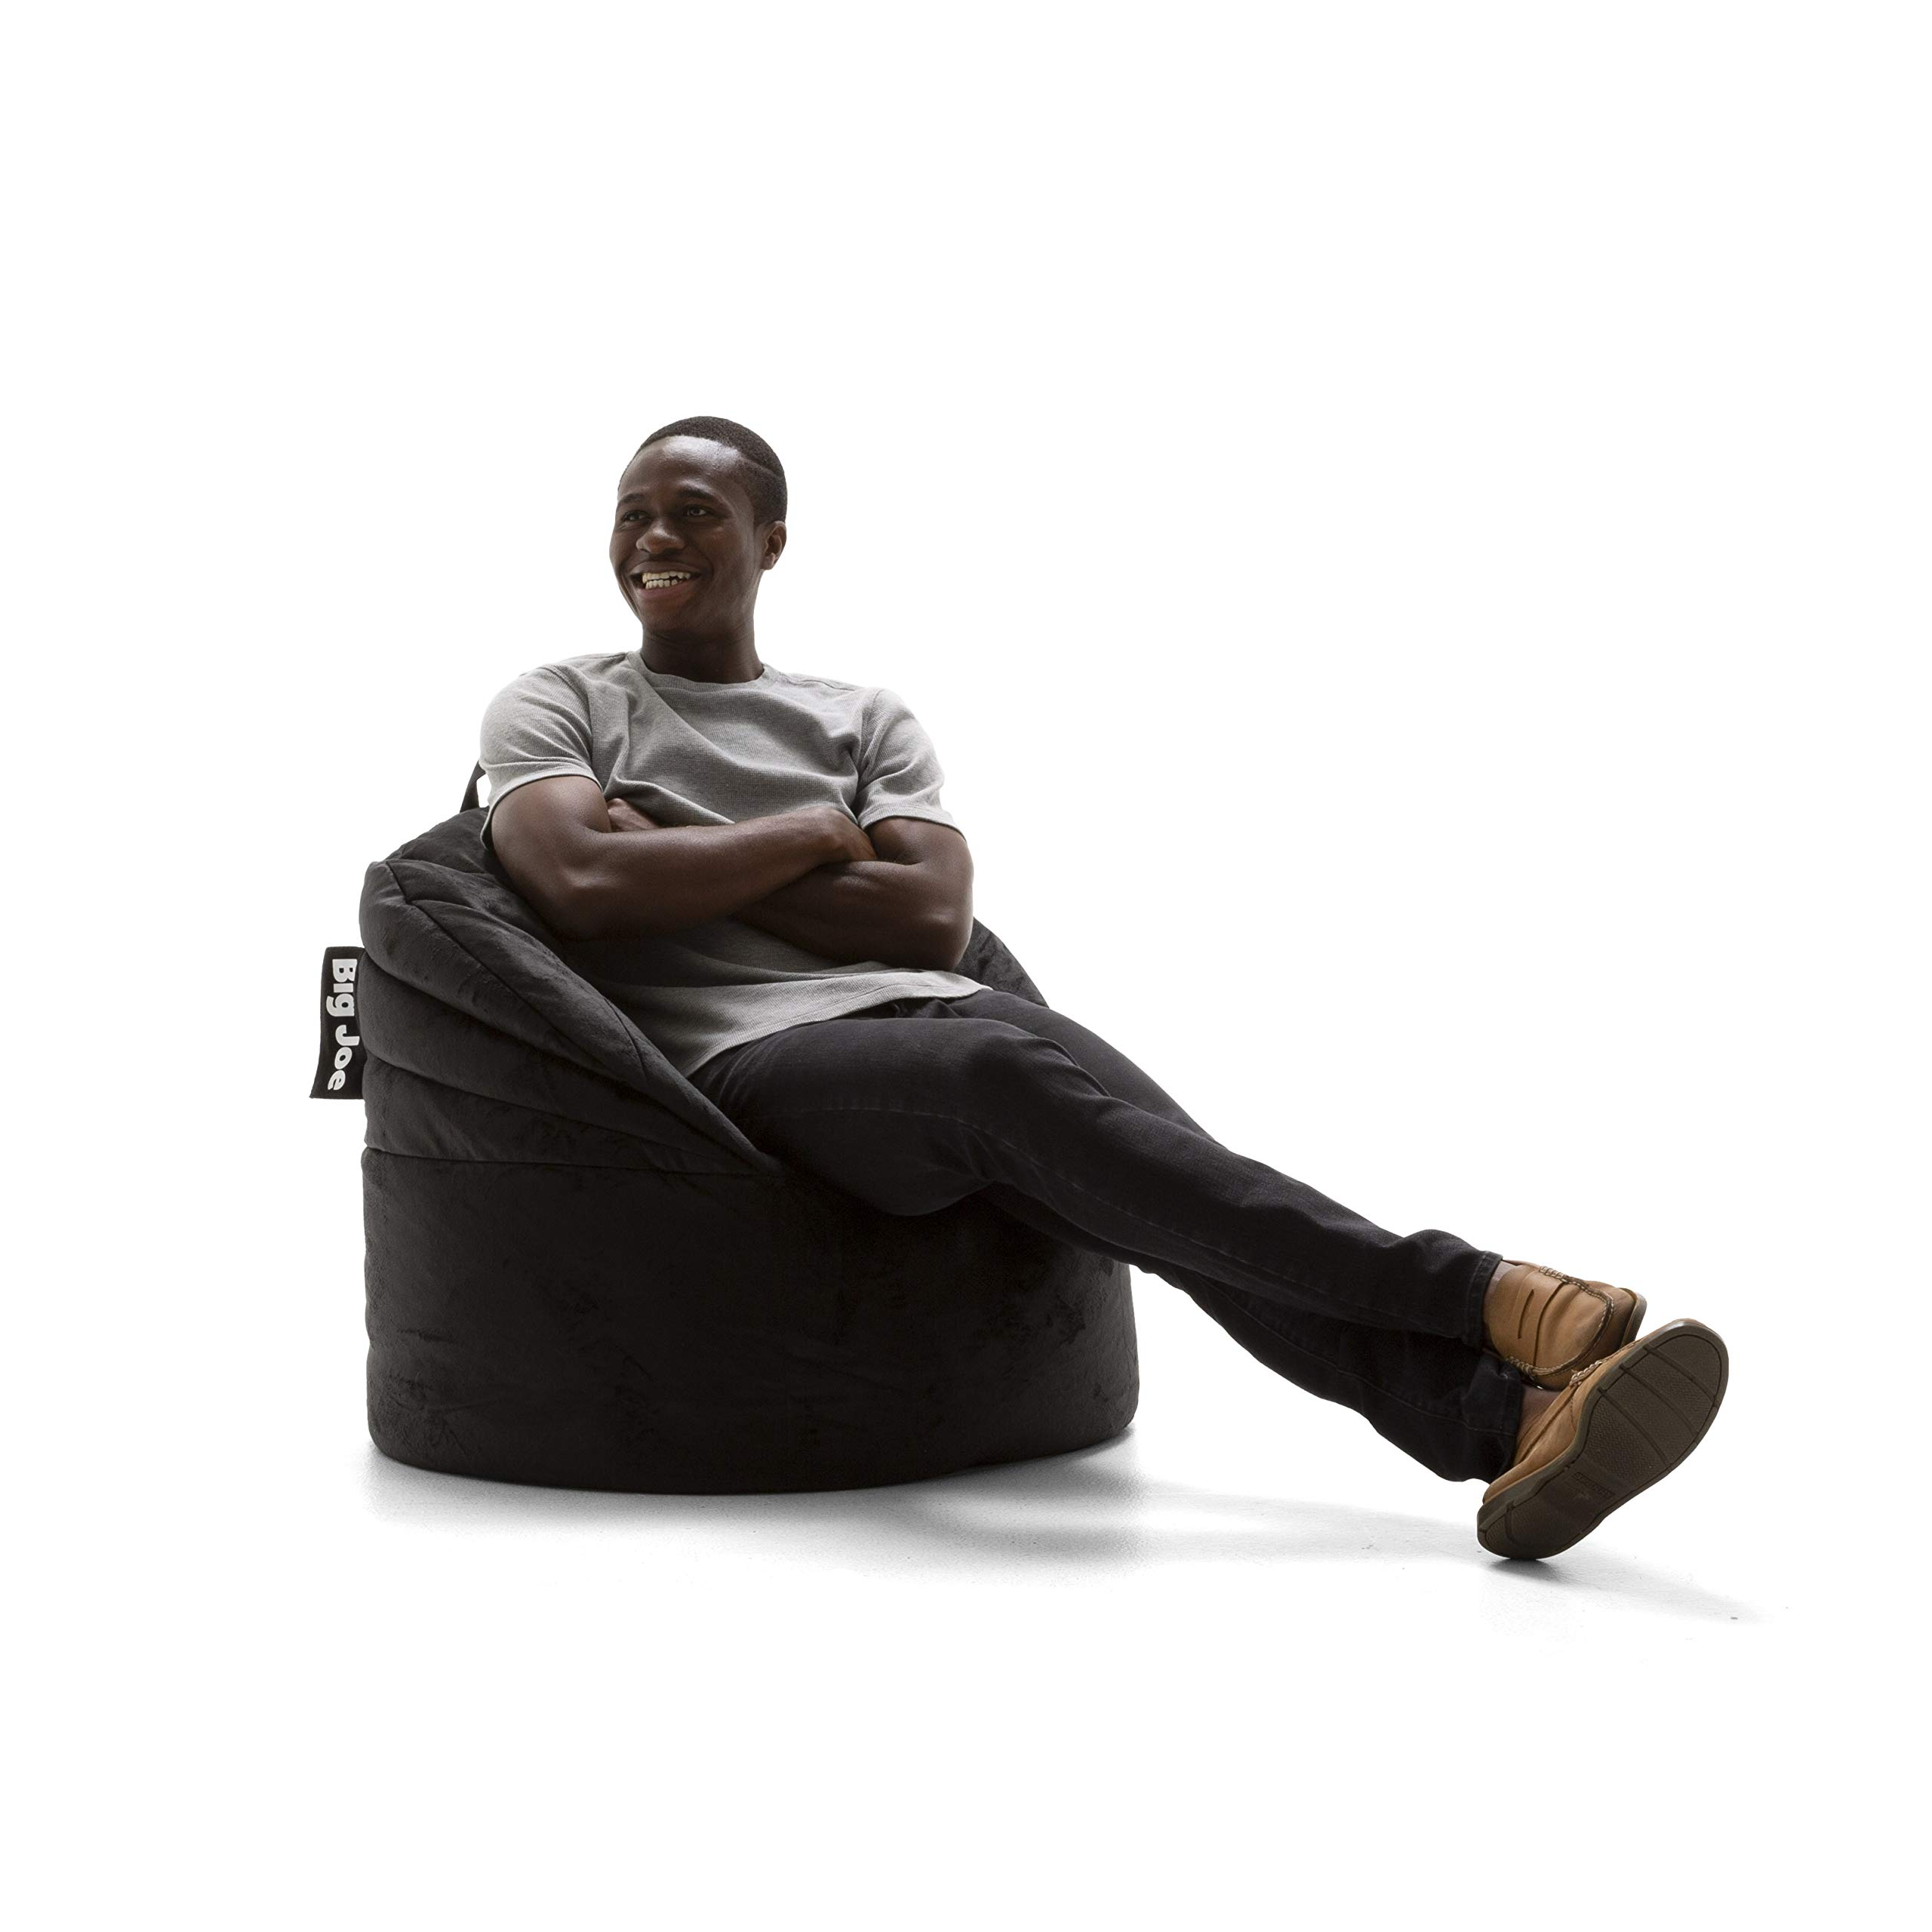 Surprising Stack Chair Black Plush Bean Bag Creativecarmelina Interior Chair Design Creativecarmelinacom